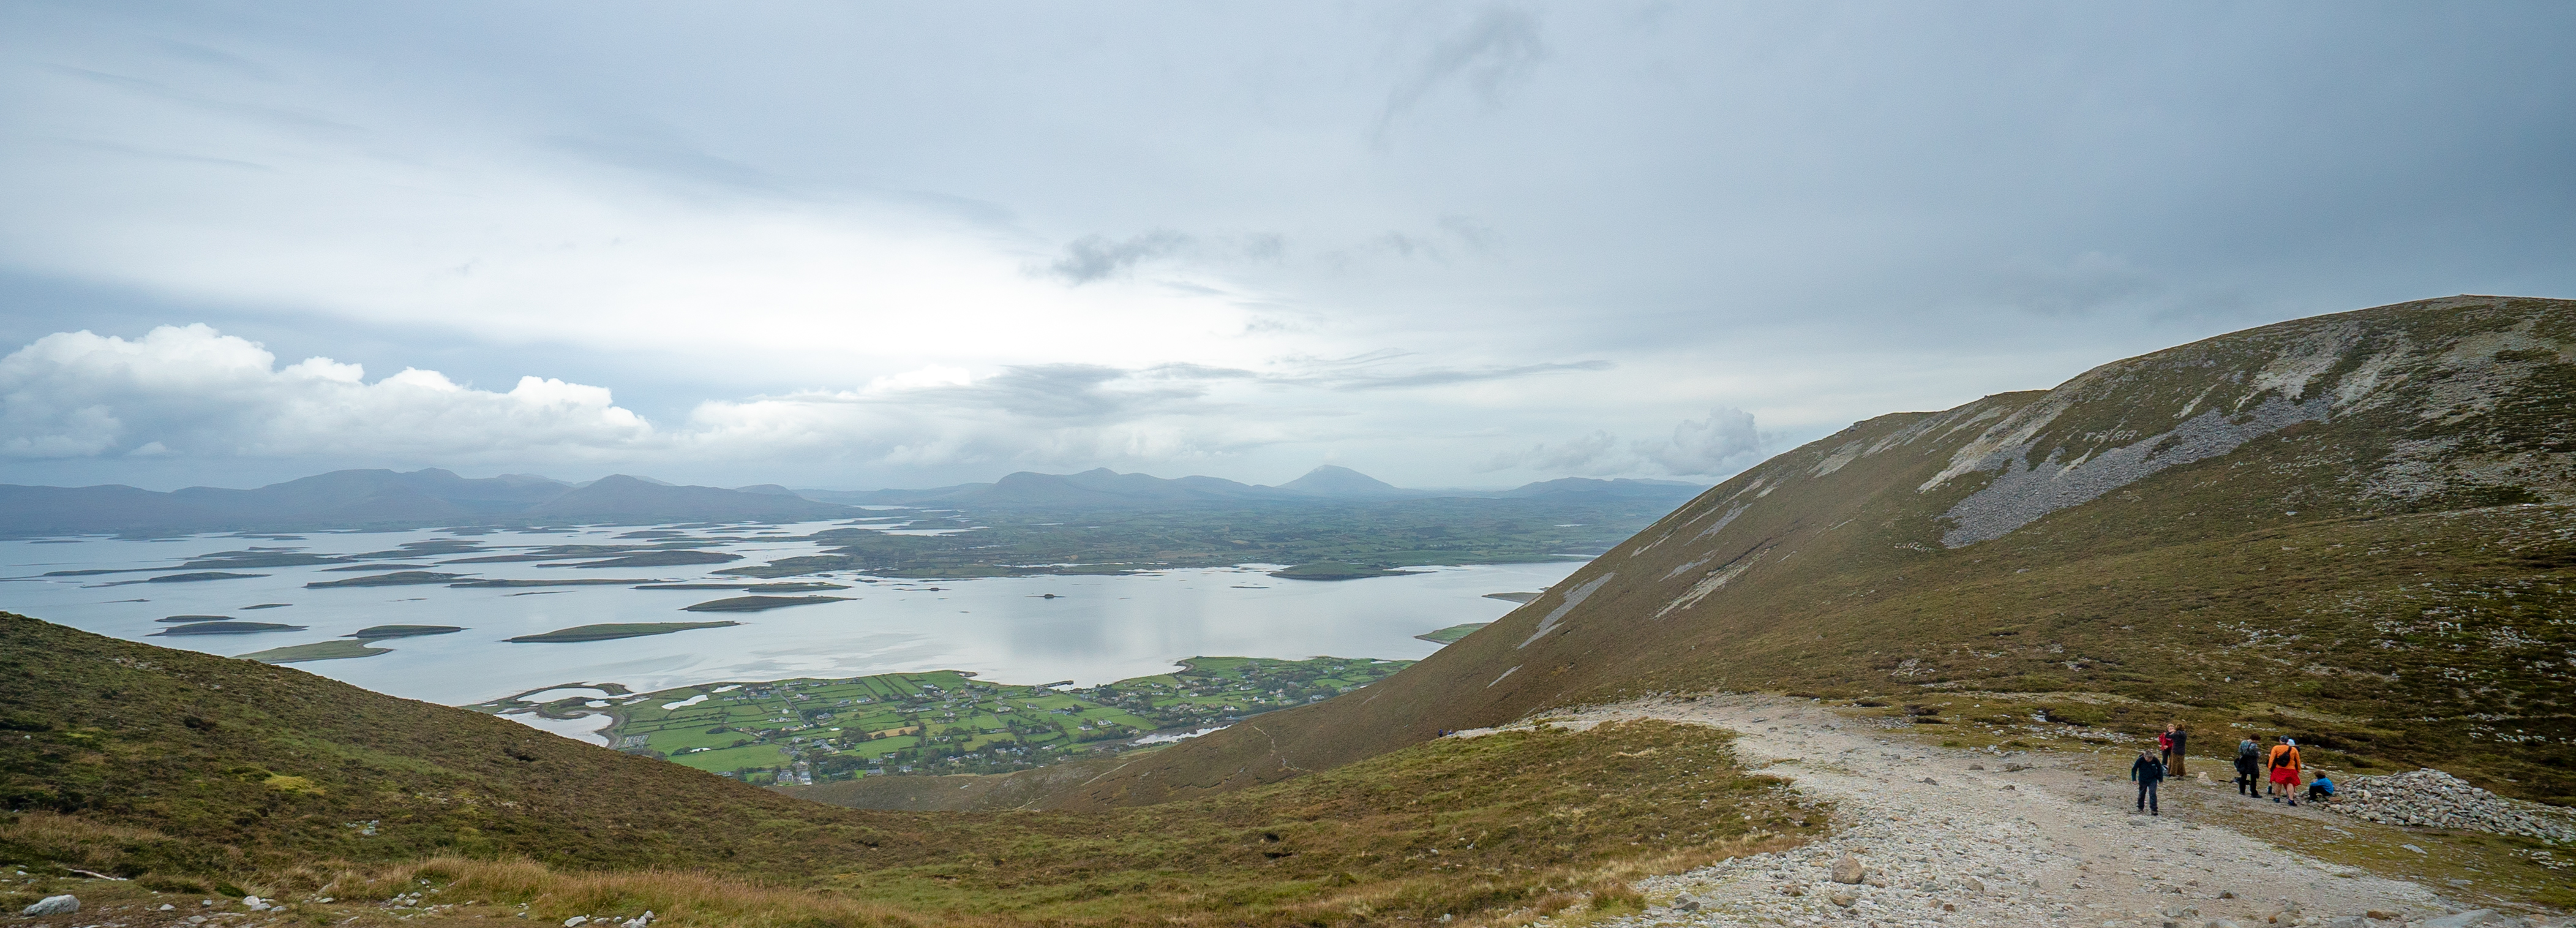 Crough Patrick Looking Toward Clew Bay